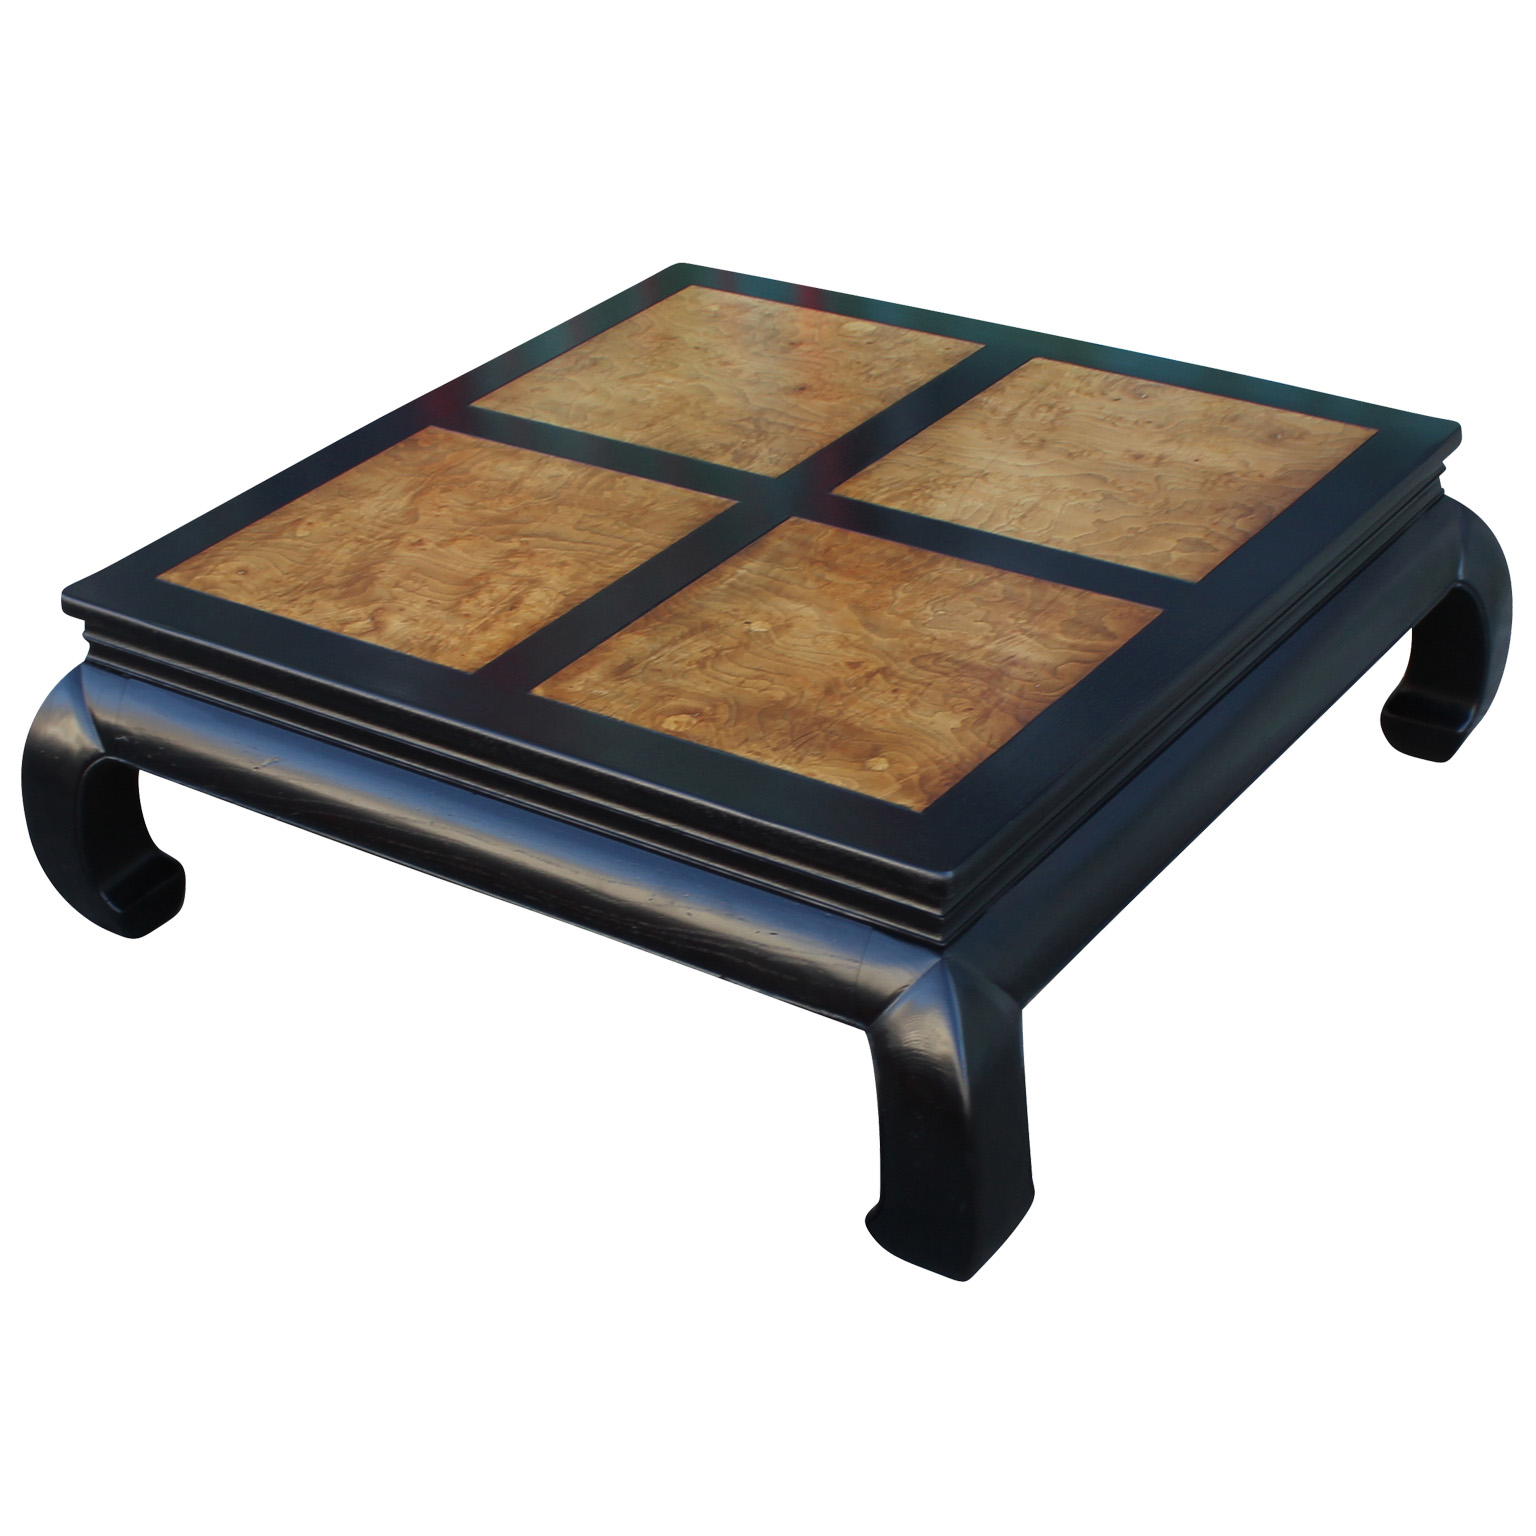 Square Coffee Table Square Coffee Table Set High Quality Elevating Coffee Table Light Brown